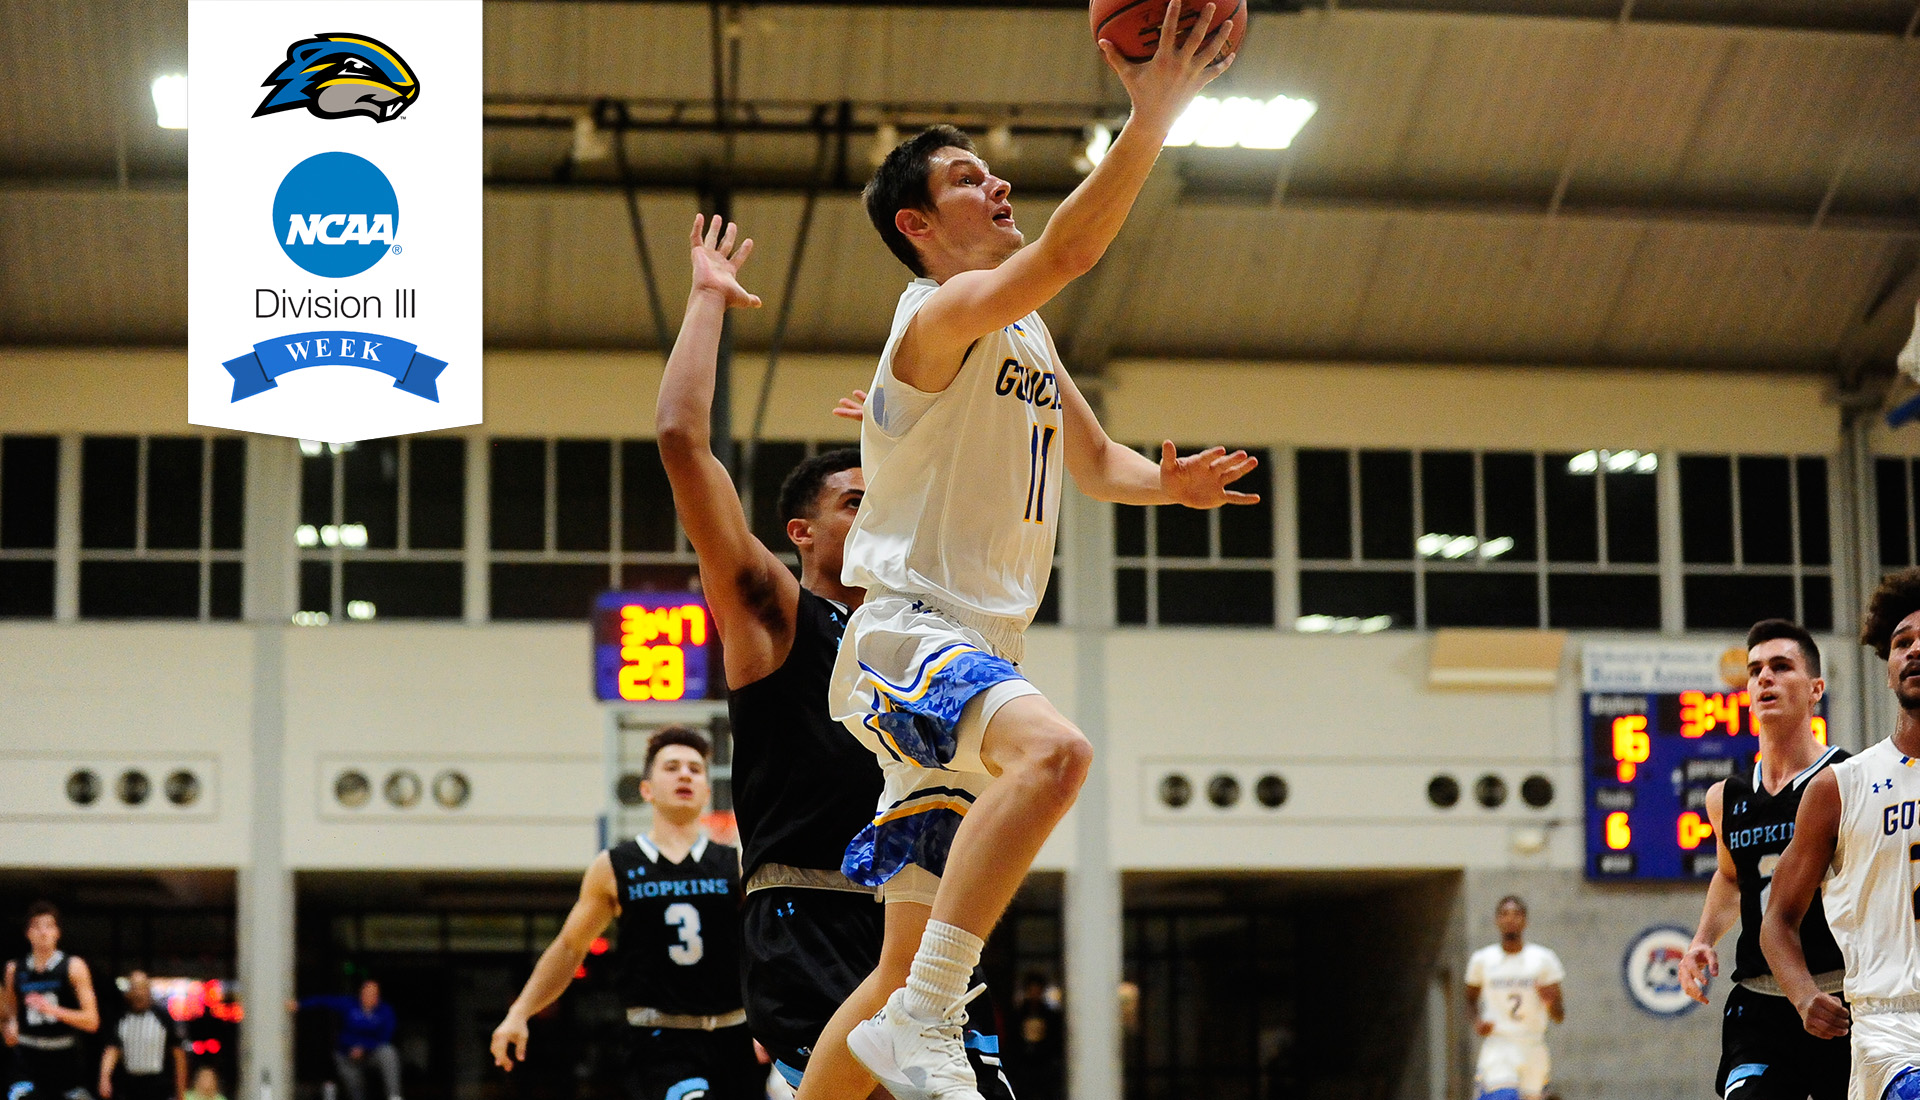 NCAA Division III Week: Questions & Answers With Goucher Men's Basketball Freshman Josh Lichti